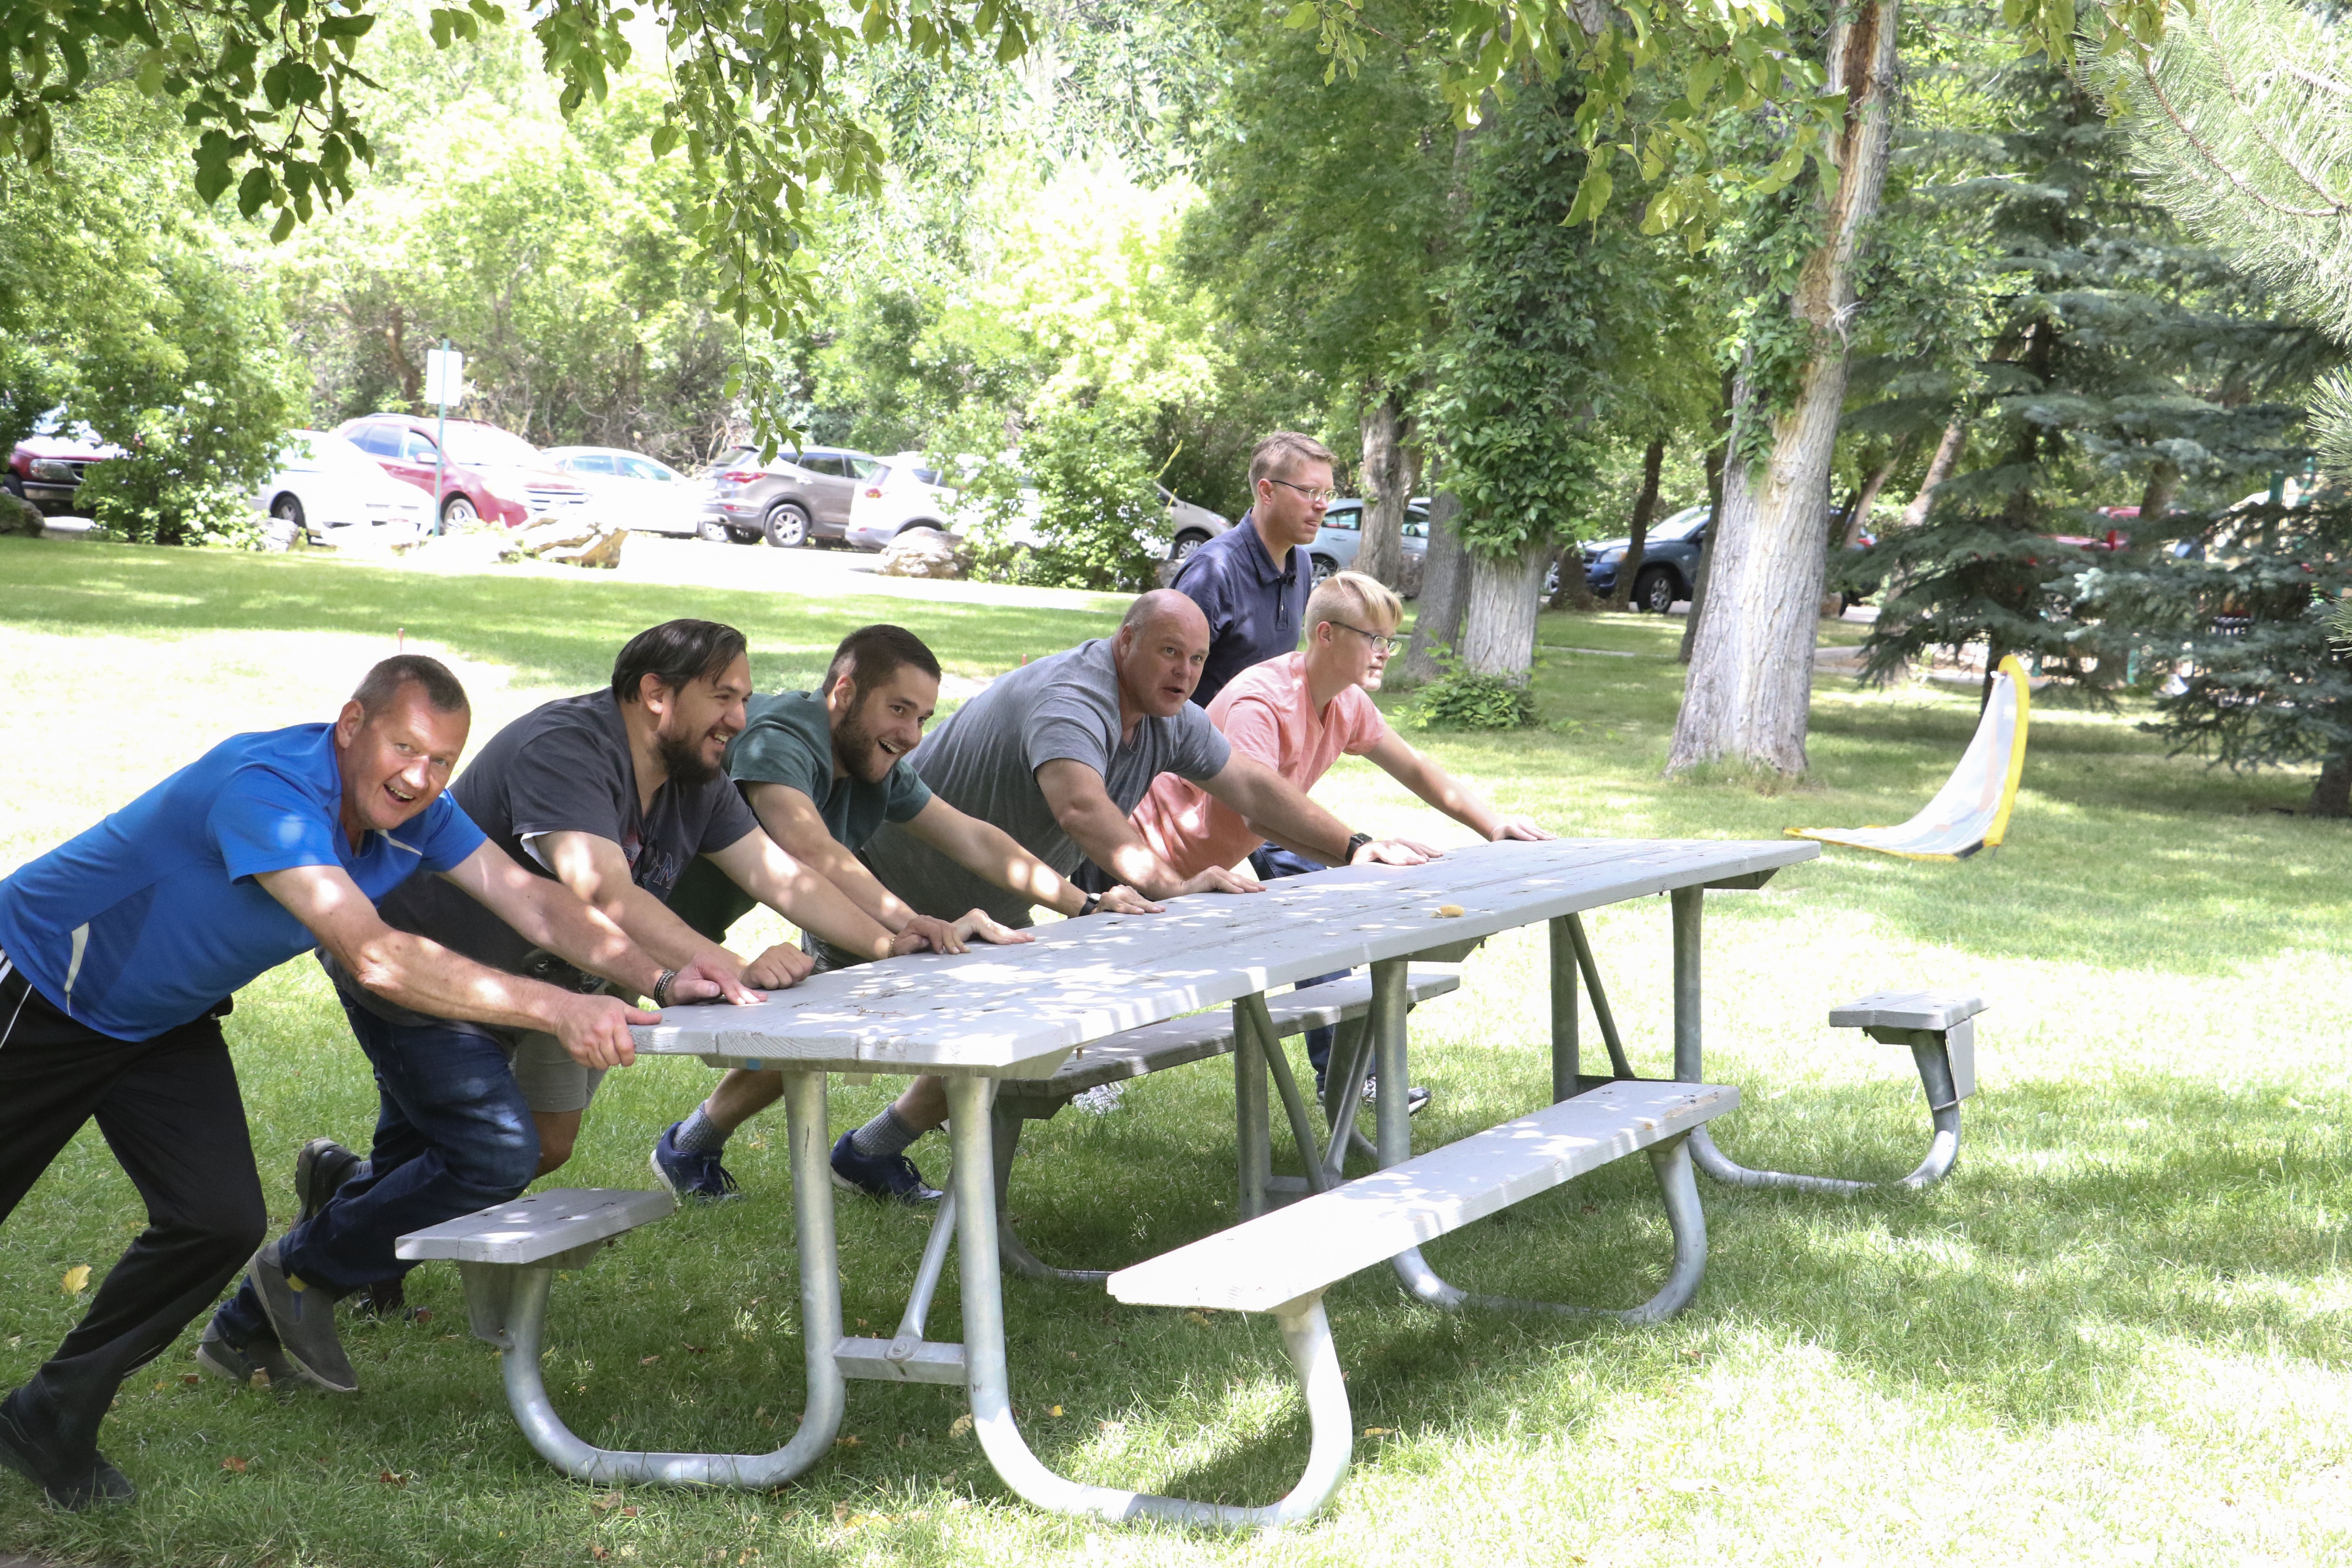 German Speaking Ward picnic-goers work together to get set up for the activities on July 13, 2019 at Washington Terrace Park in Parley's Canyon, Utah, on July 13, 2019.